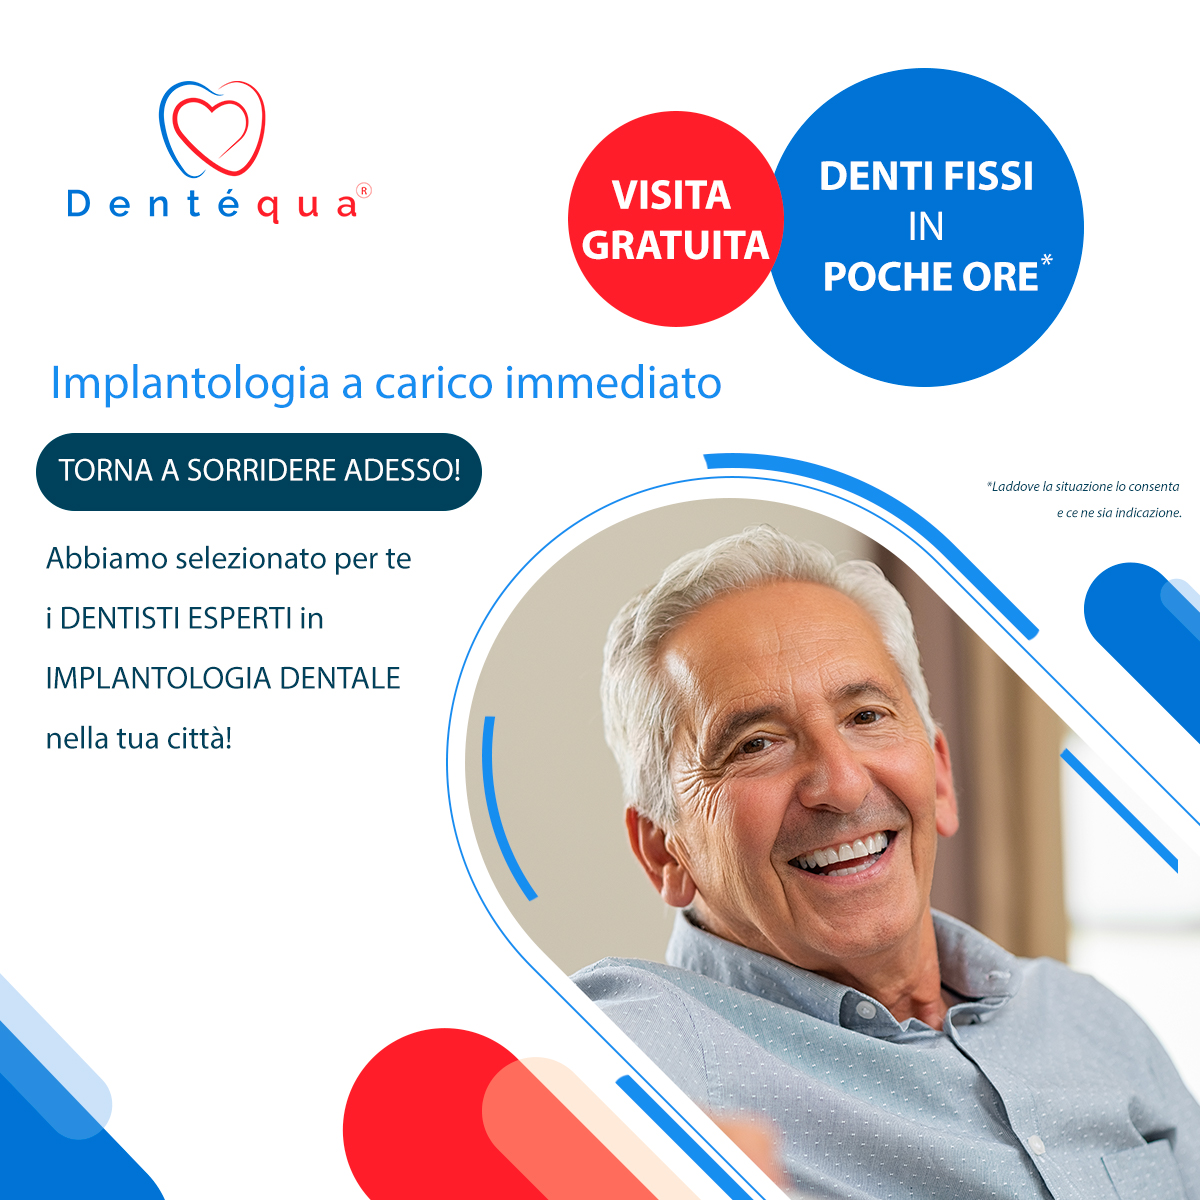 implantologia carico immediato trova dentista